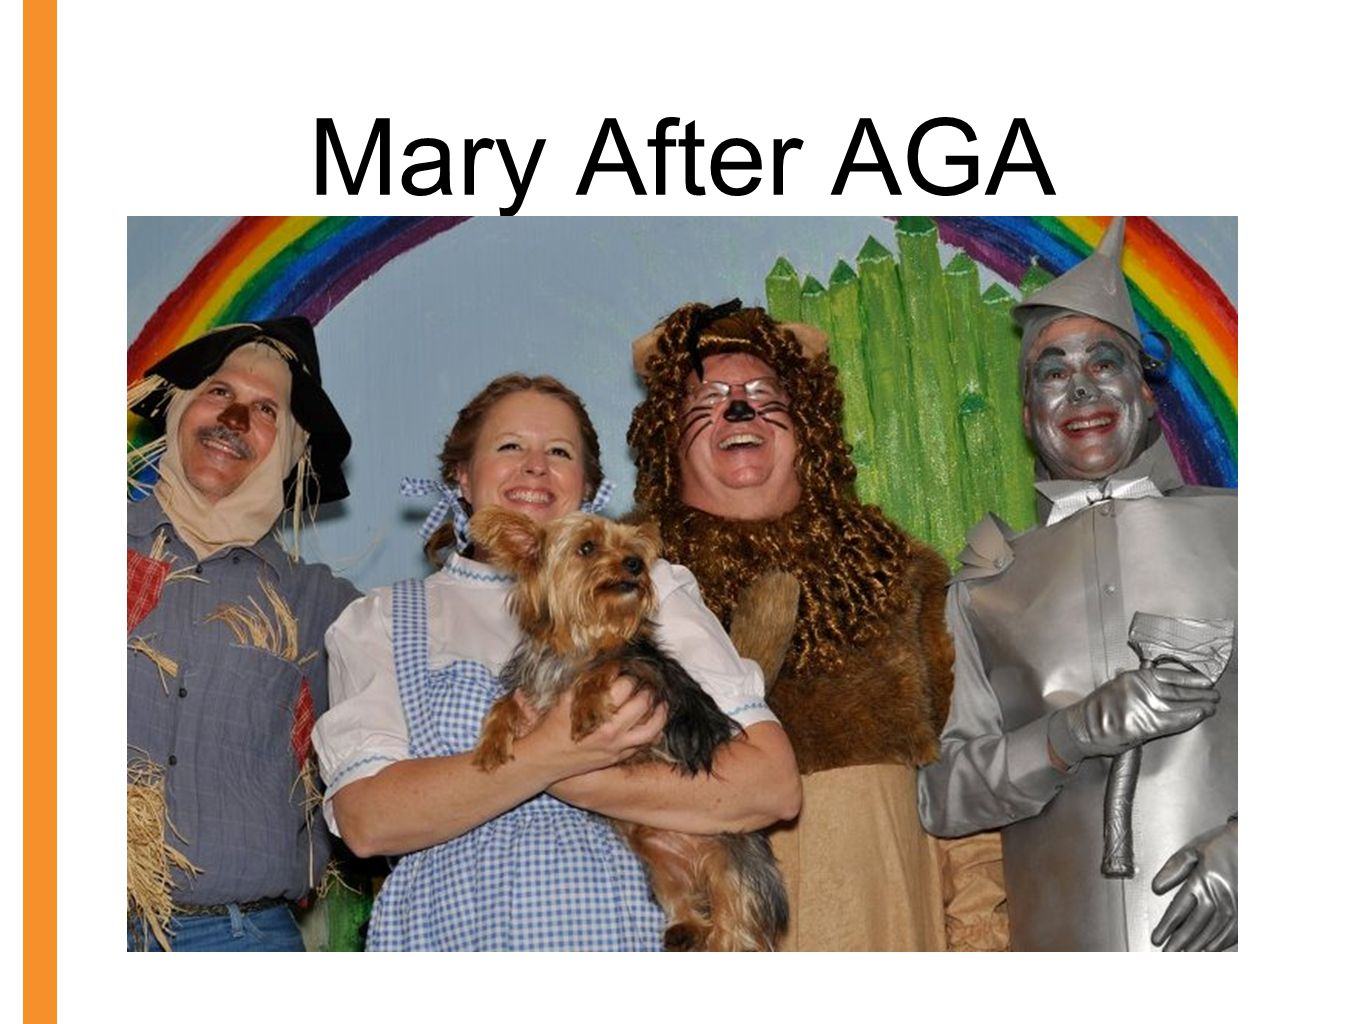 How to CONNECT with me: Mary Peterman mpeterman@mediacombb.net Cell: 757-642-1819 Twitter: @AGAPREZ LinkedIn and join the AGA Group!!.